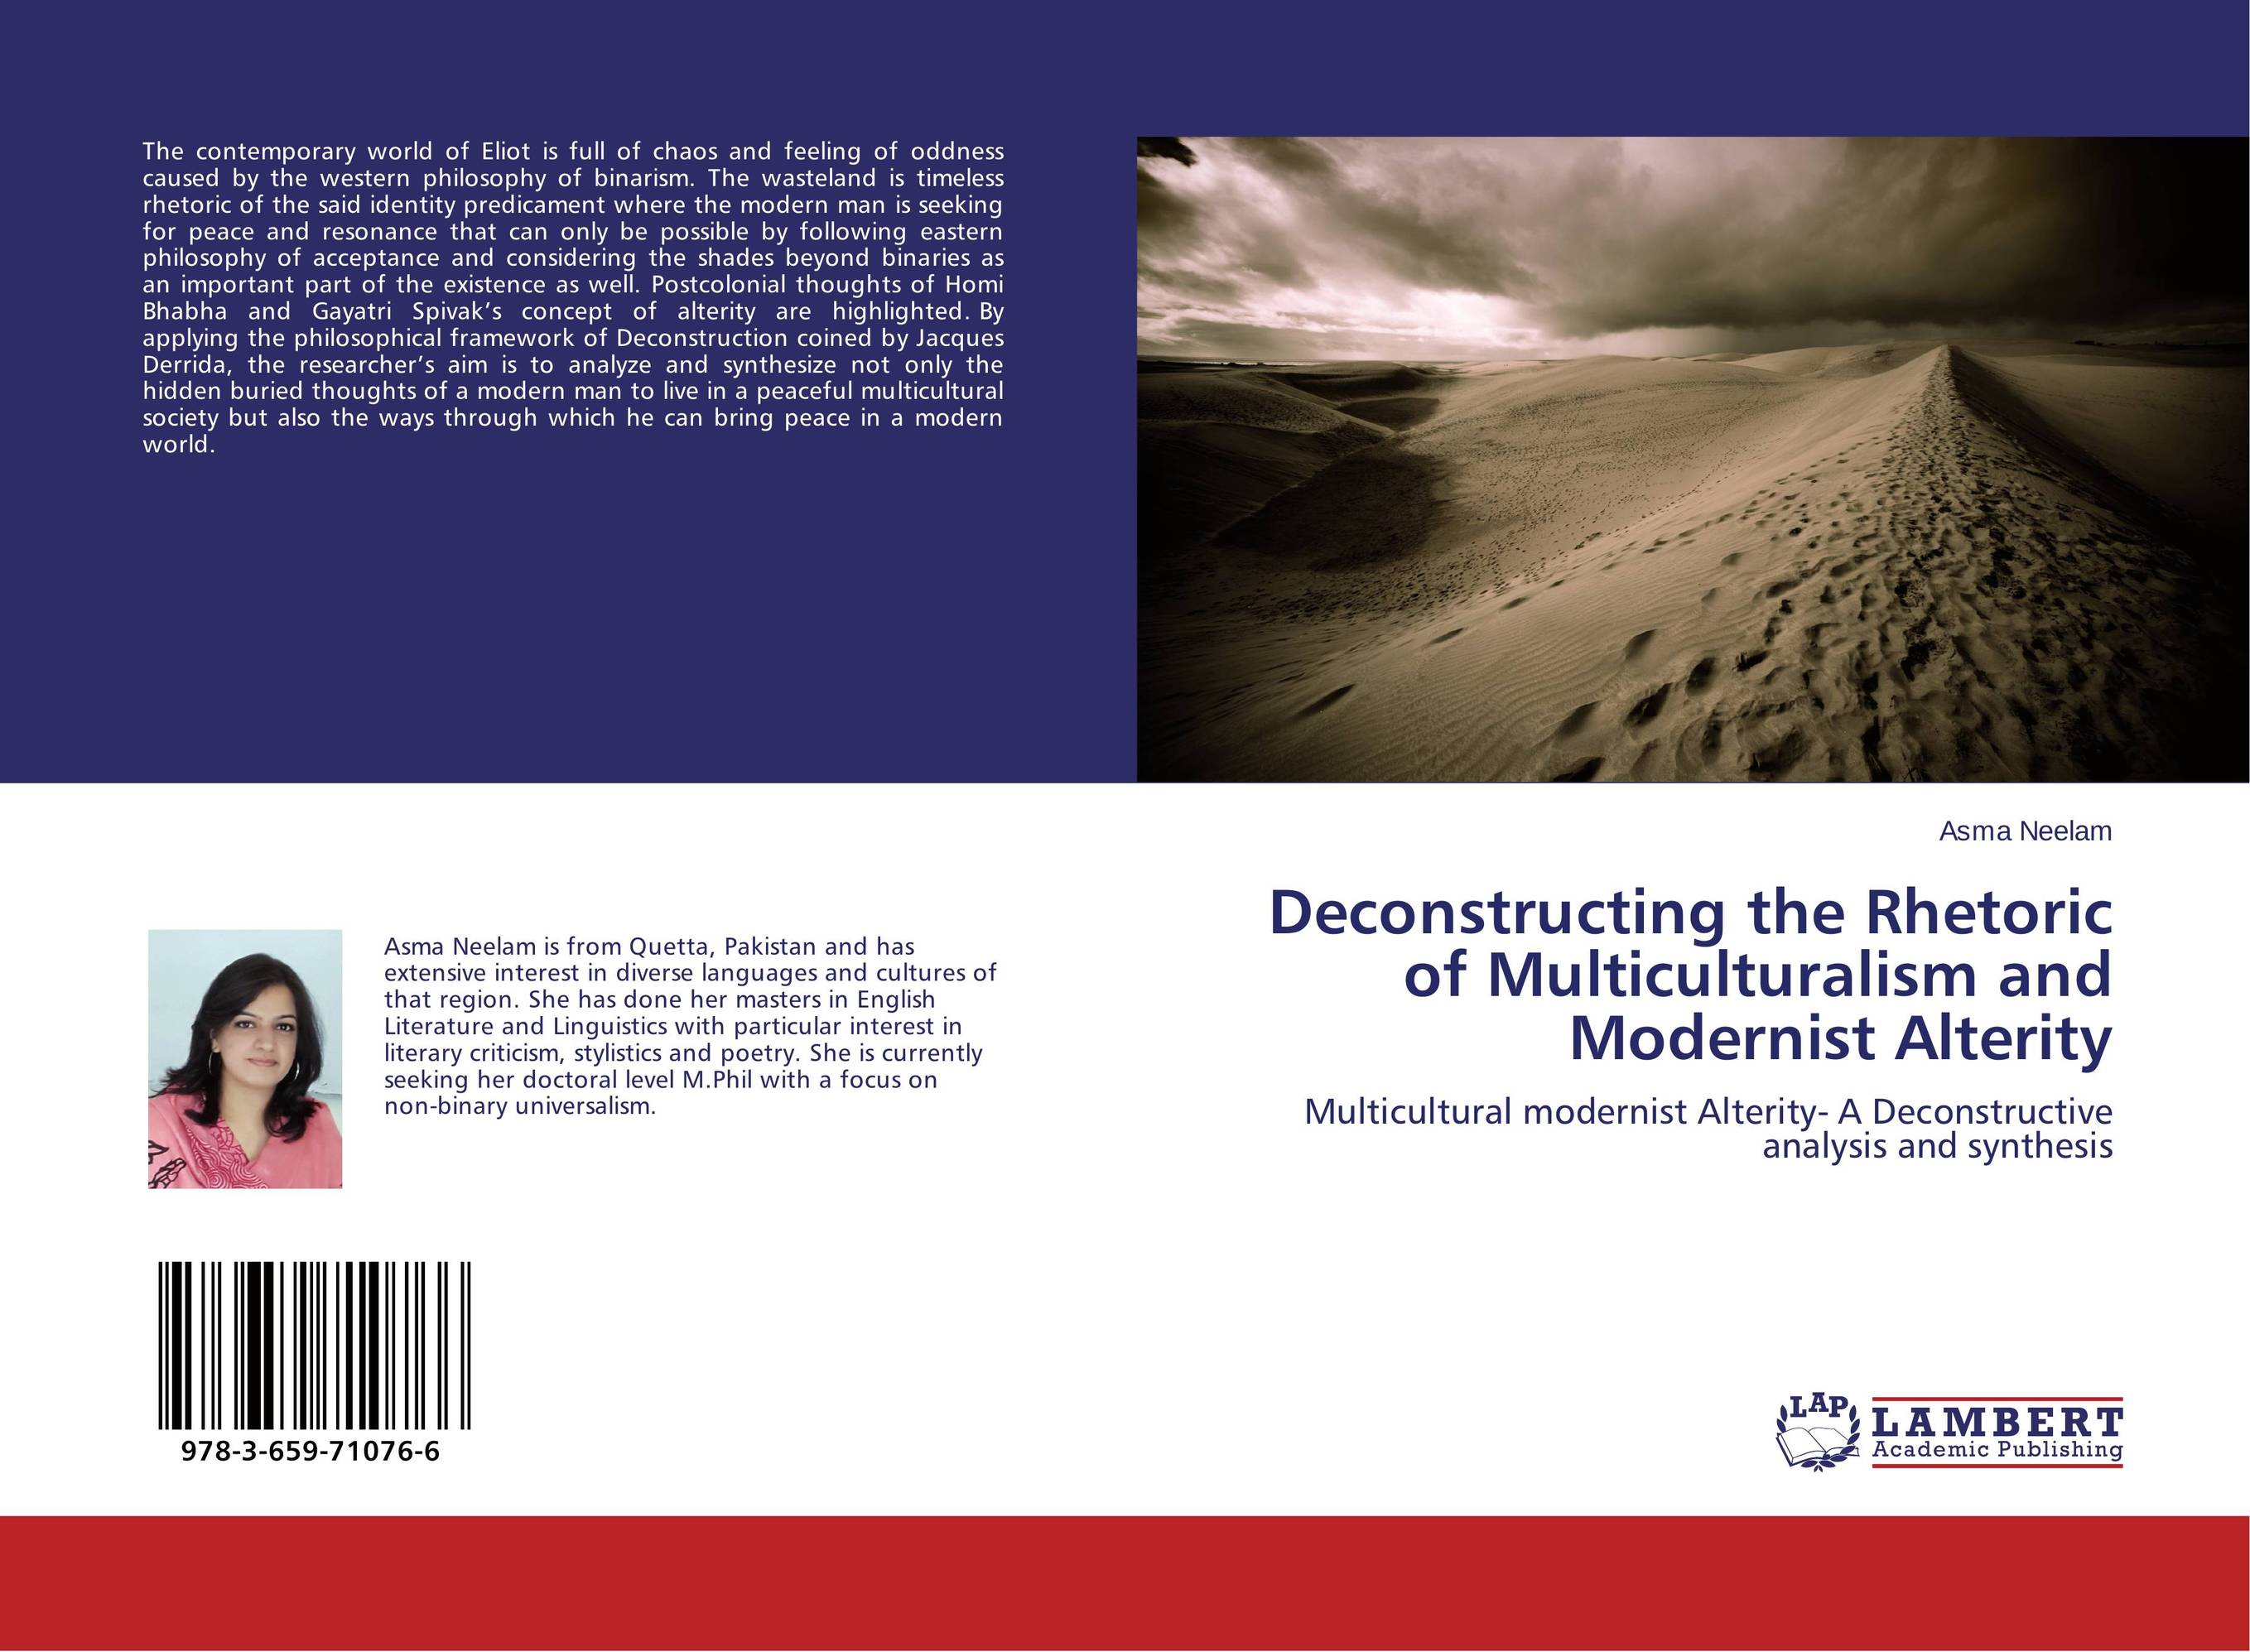 Deconstructing the Rhetoric of Multiculturalism and Modernist Alterity man of feeling